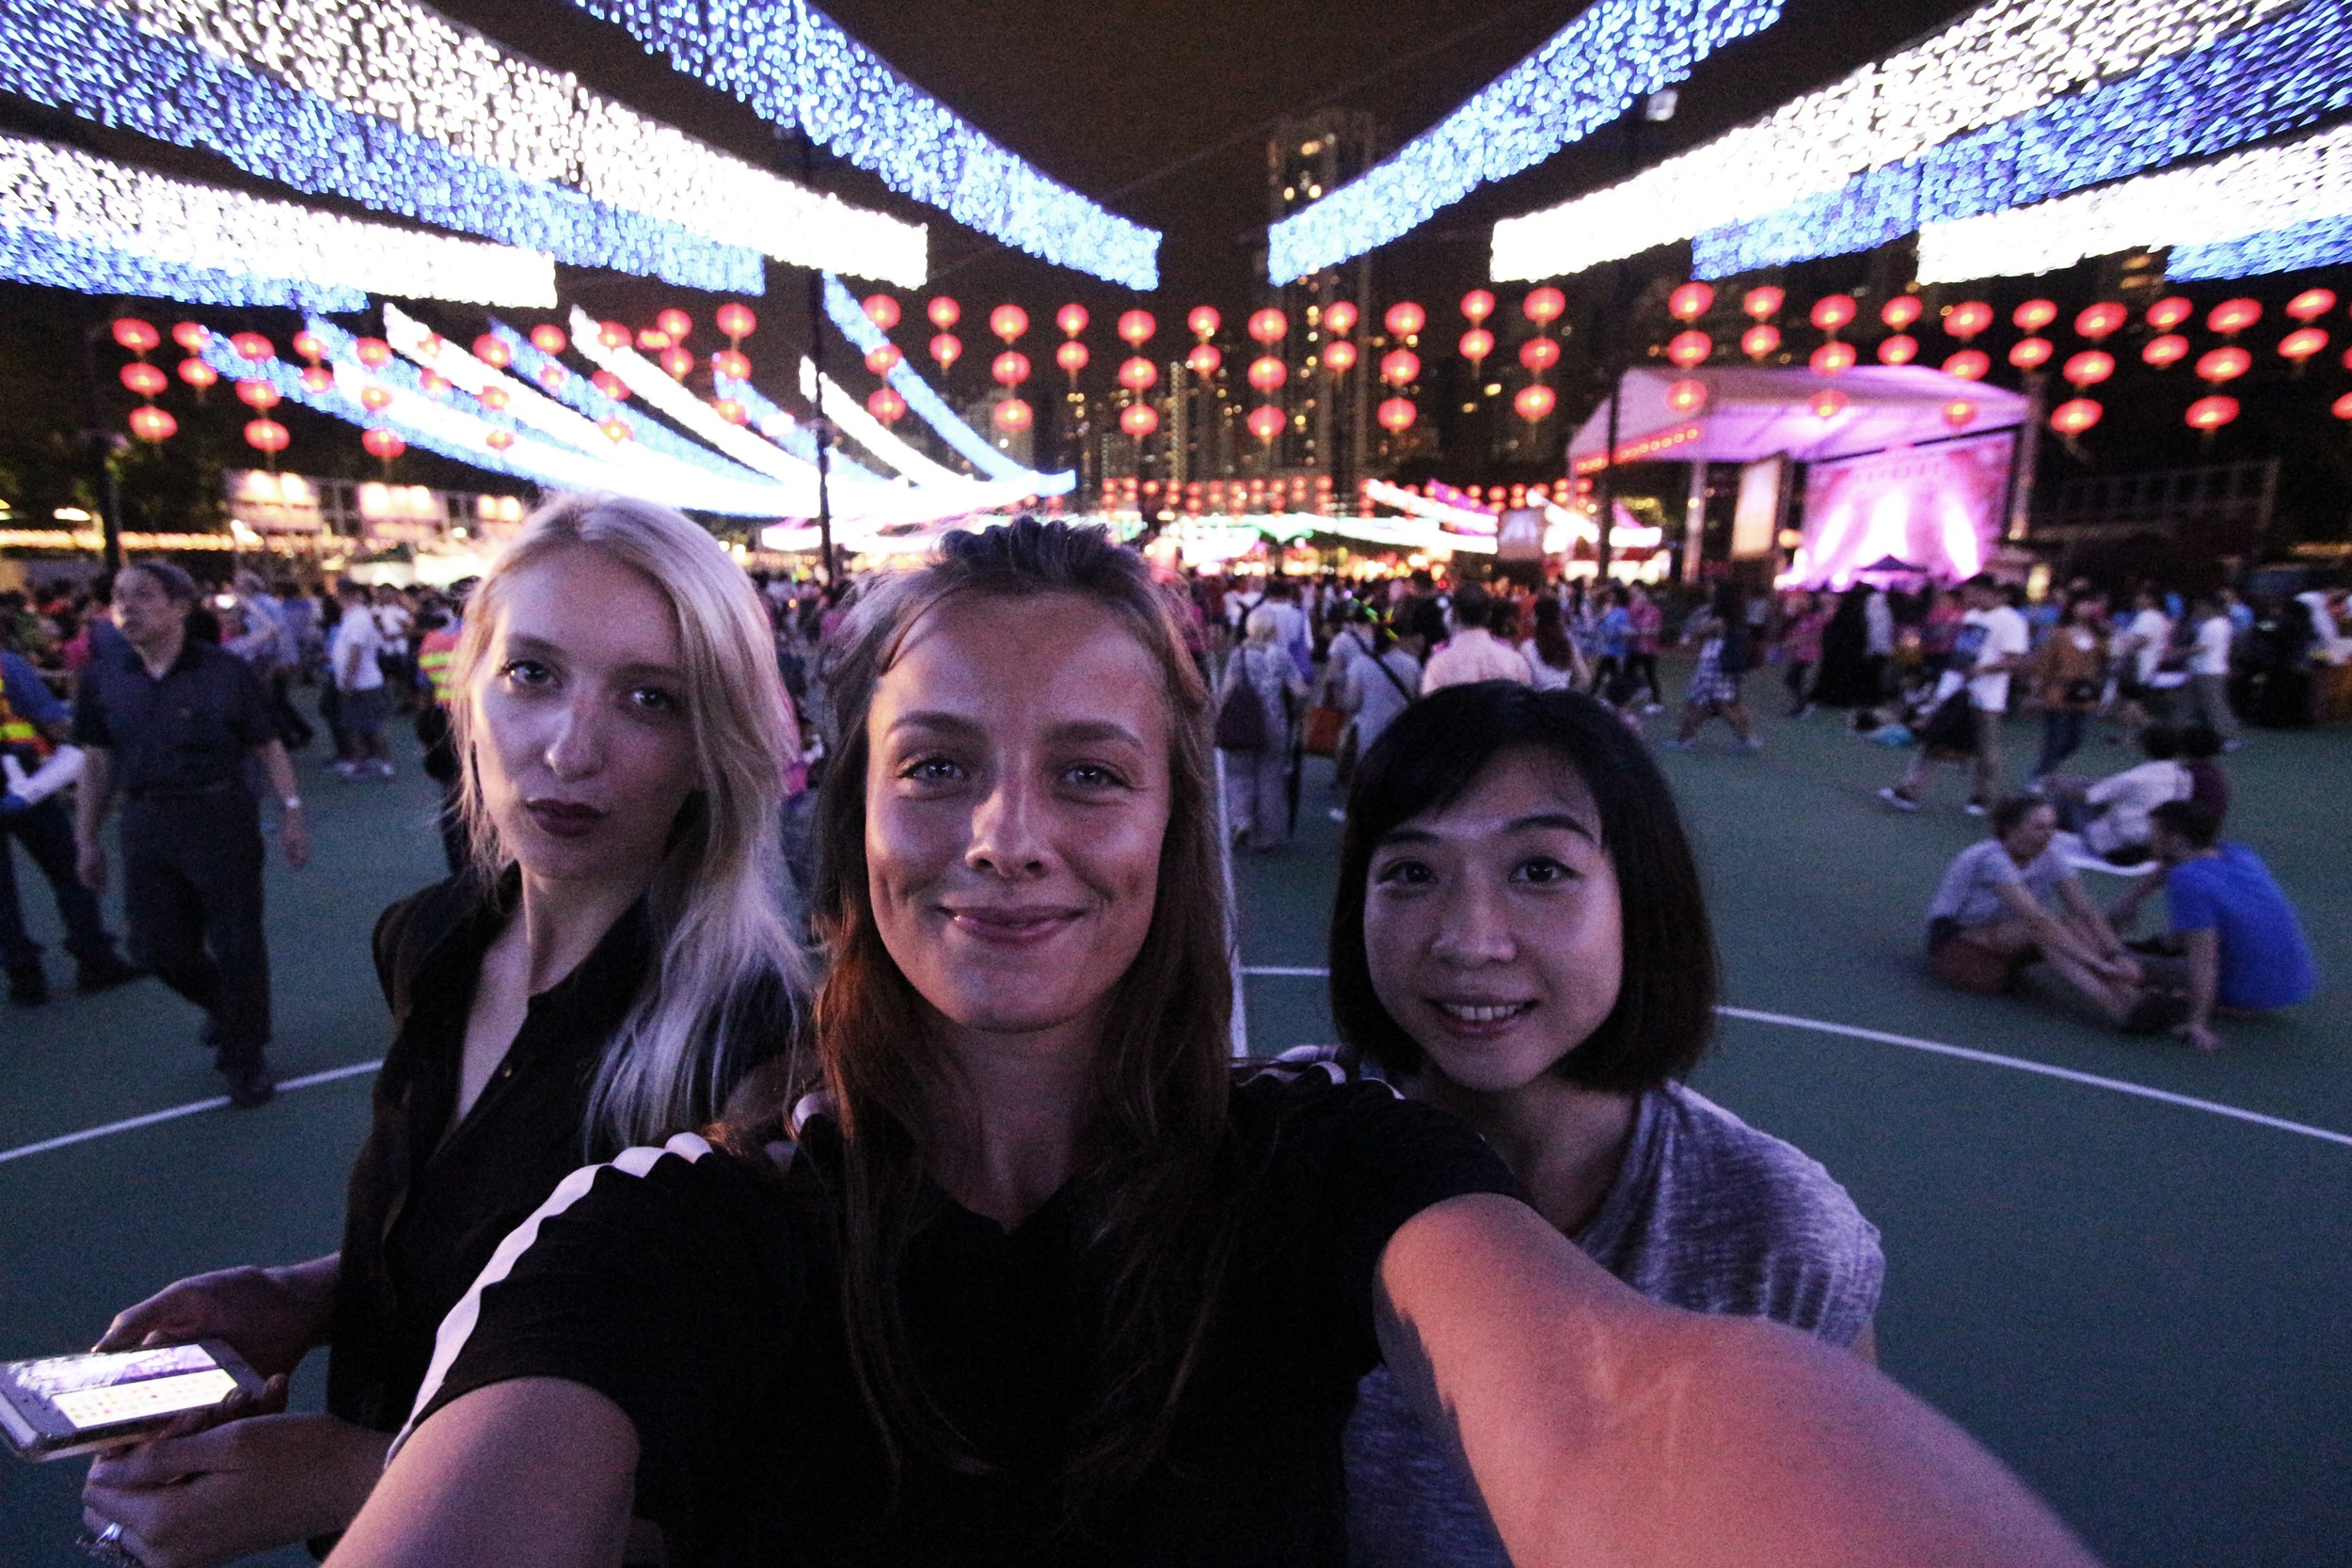 Groupfie in the big MidAutumn Festival venue; with Elene and Molly